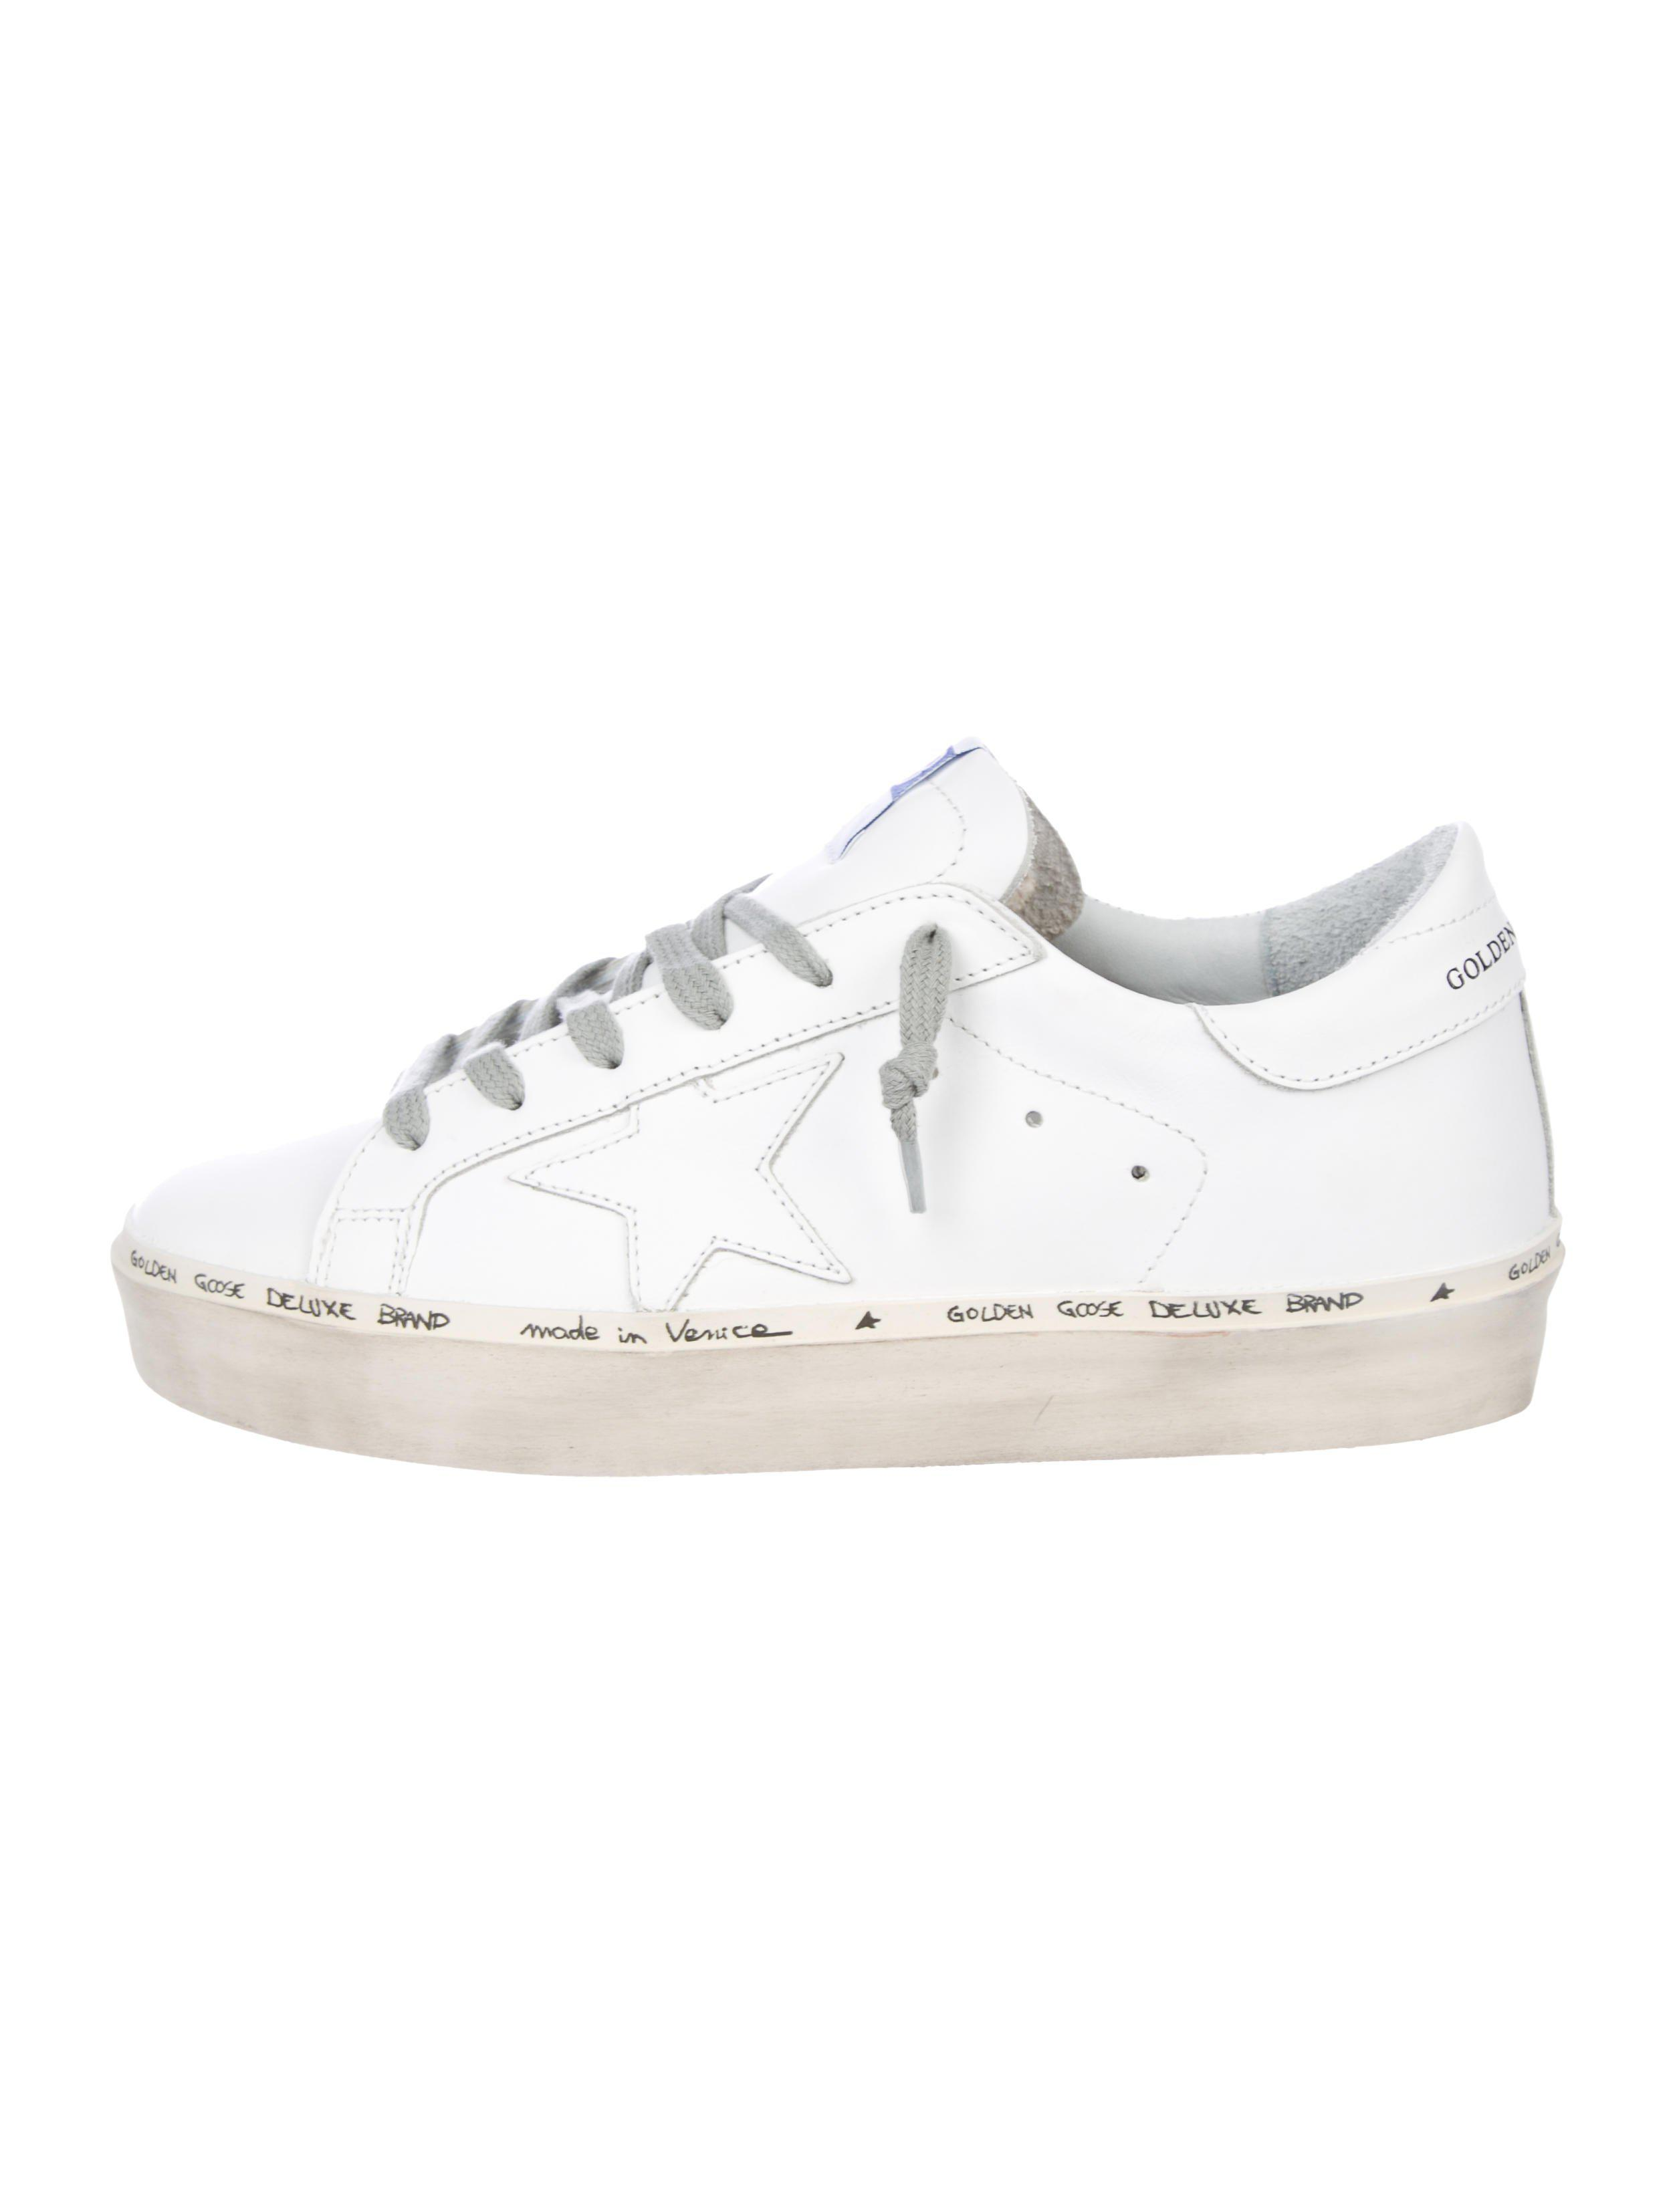 Golden Goose Running Low-Top Sneakers w/ Tags discount wiki outlet official cheap fashion Style cheap sale clearance discount with mastercard Ldbuep